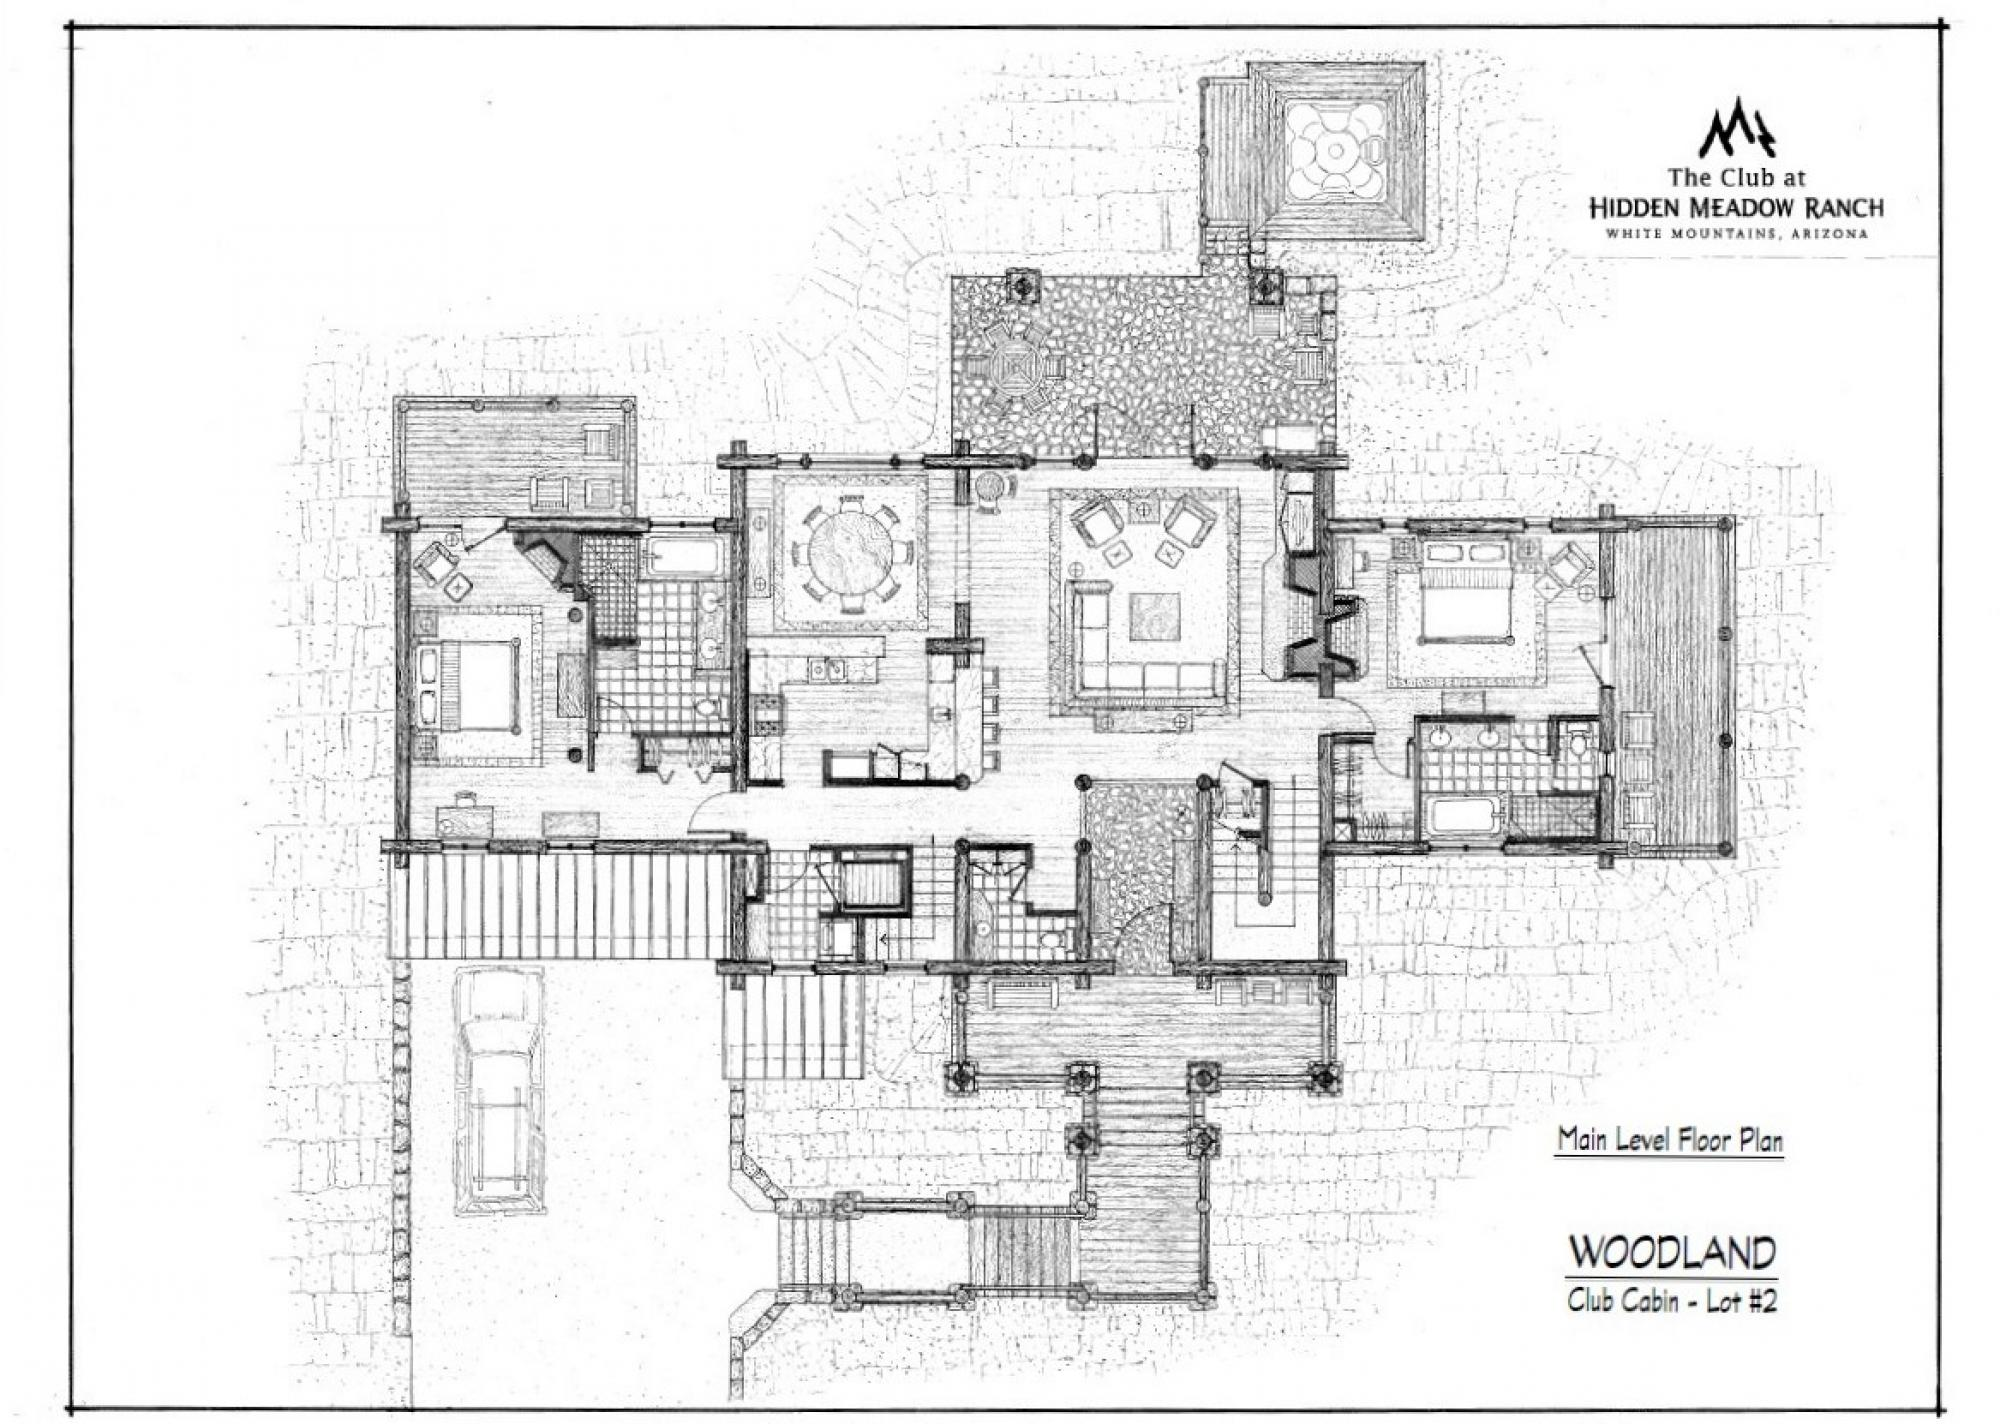 Example Floorplan - The Club at Hidden Meadow Ranch